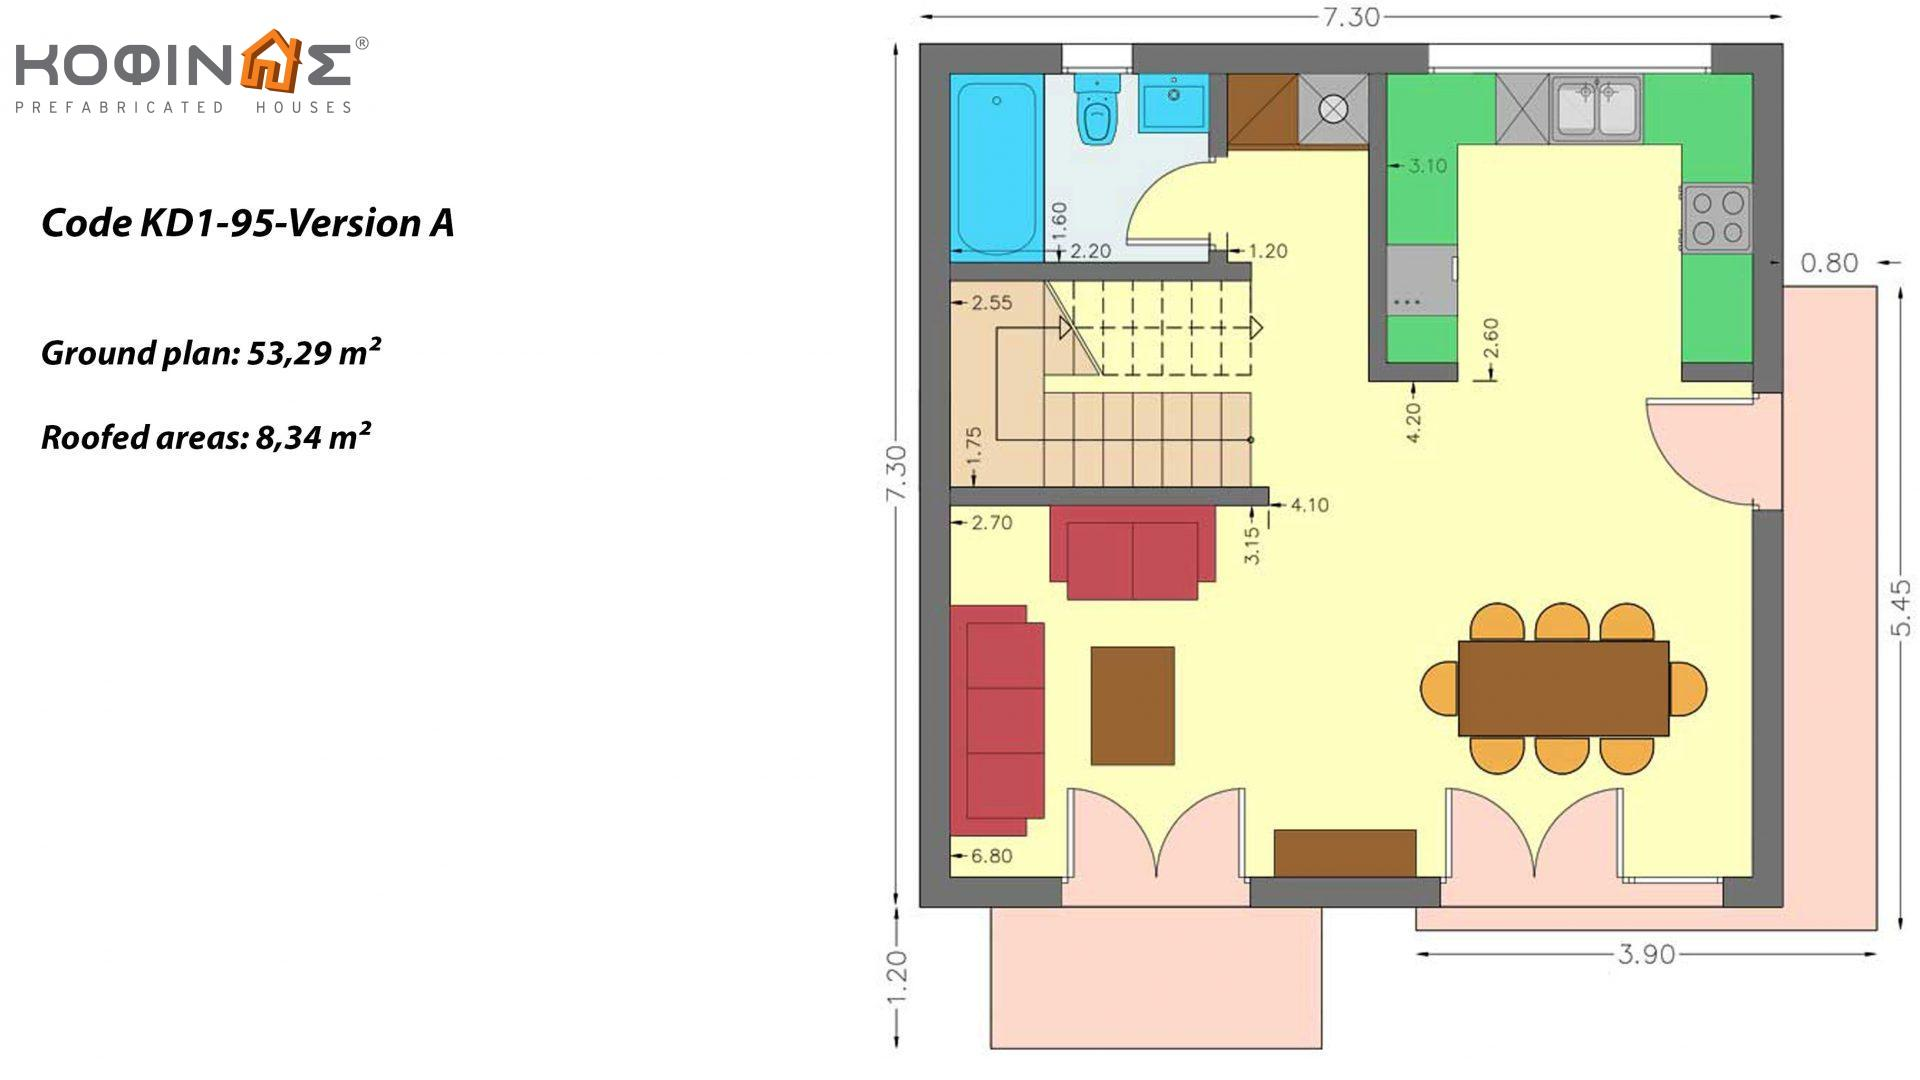 2-story house KD1-95, total surface of 95,70 m²,roofed areas 19.23 m²,balconies 10.89 m²